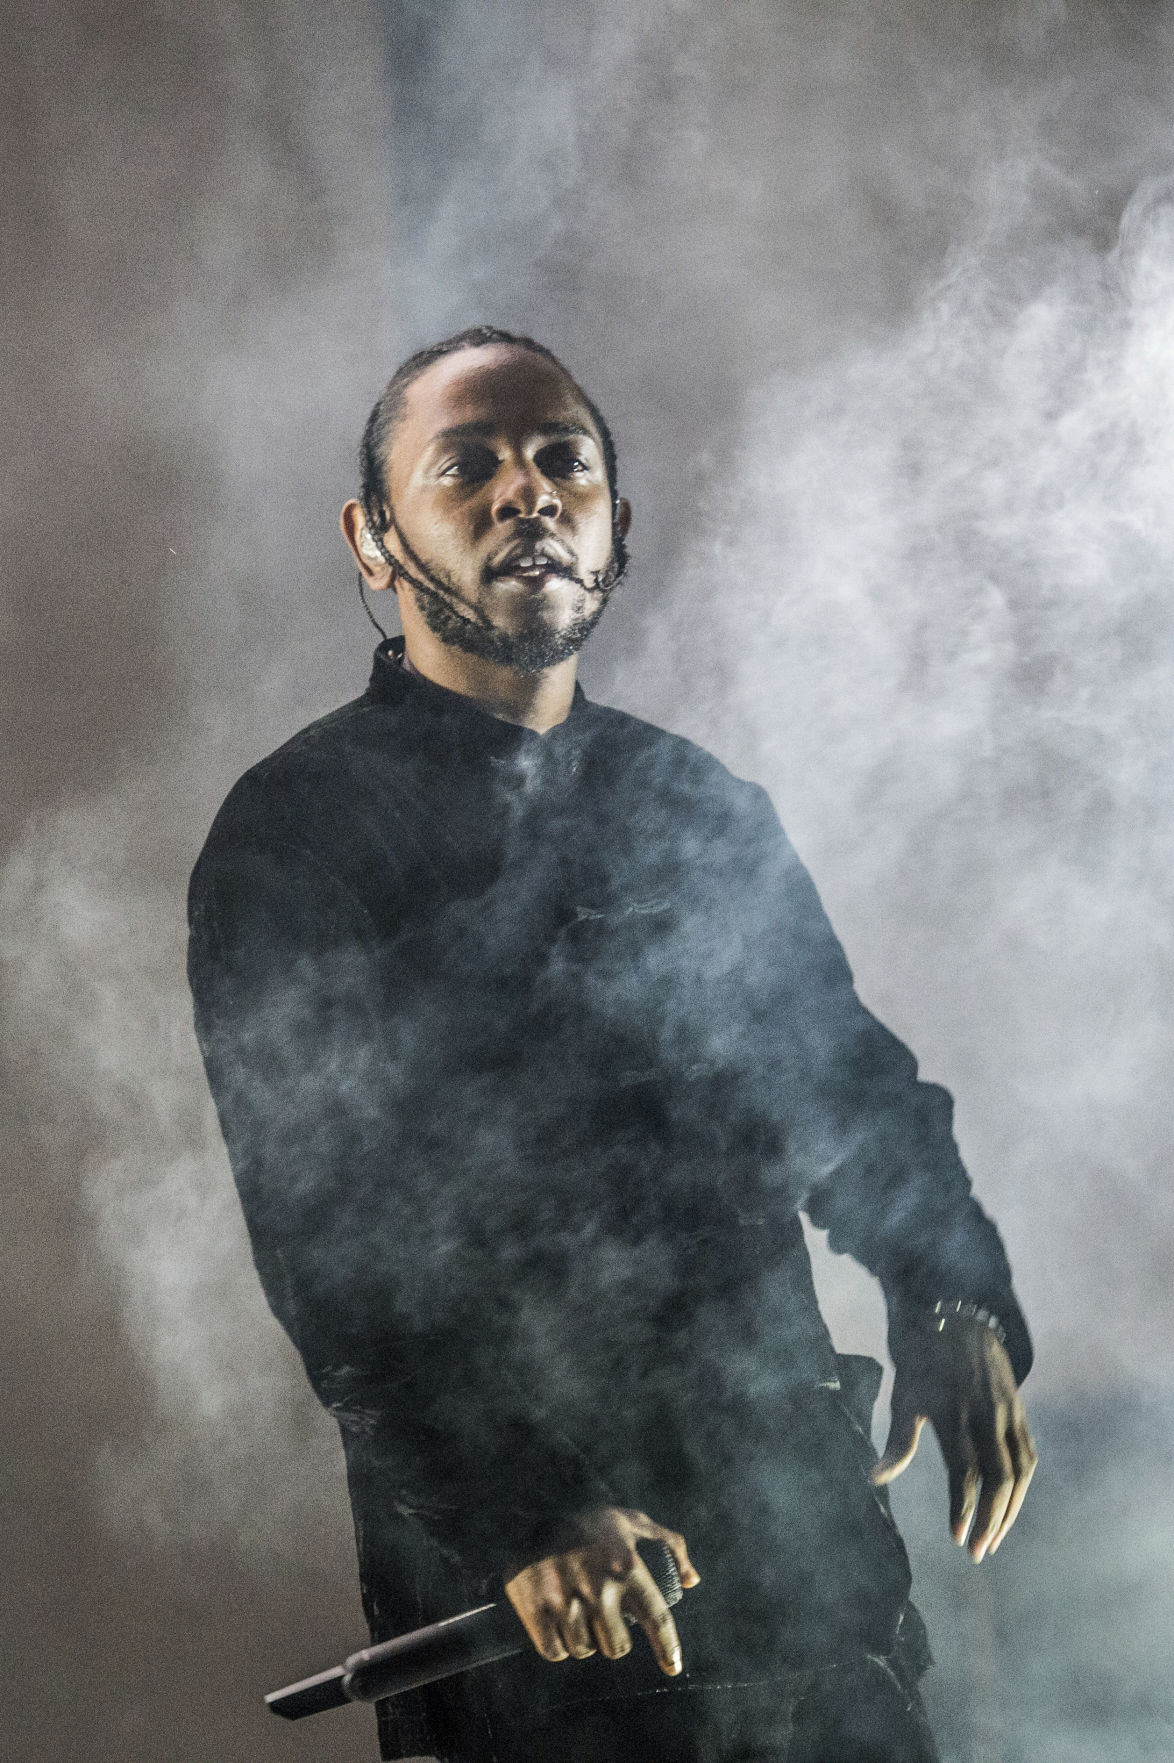 Kendrick Lamar at Coachella for Red